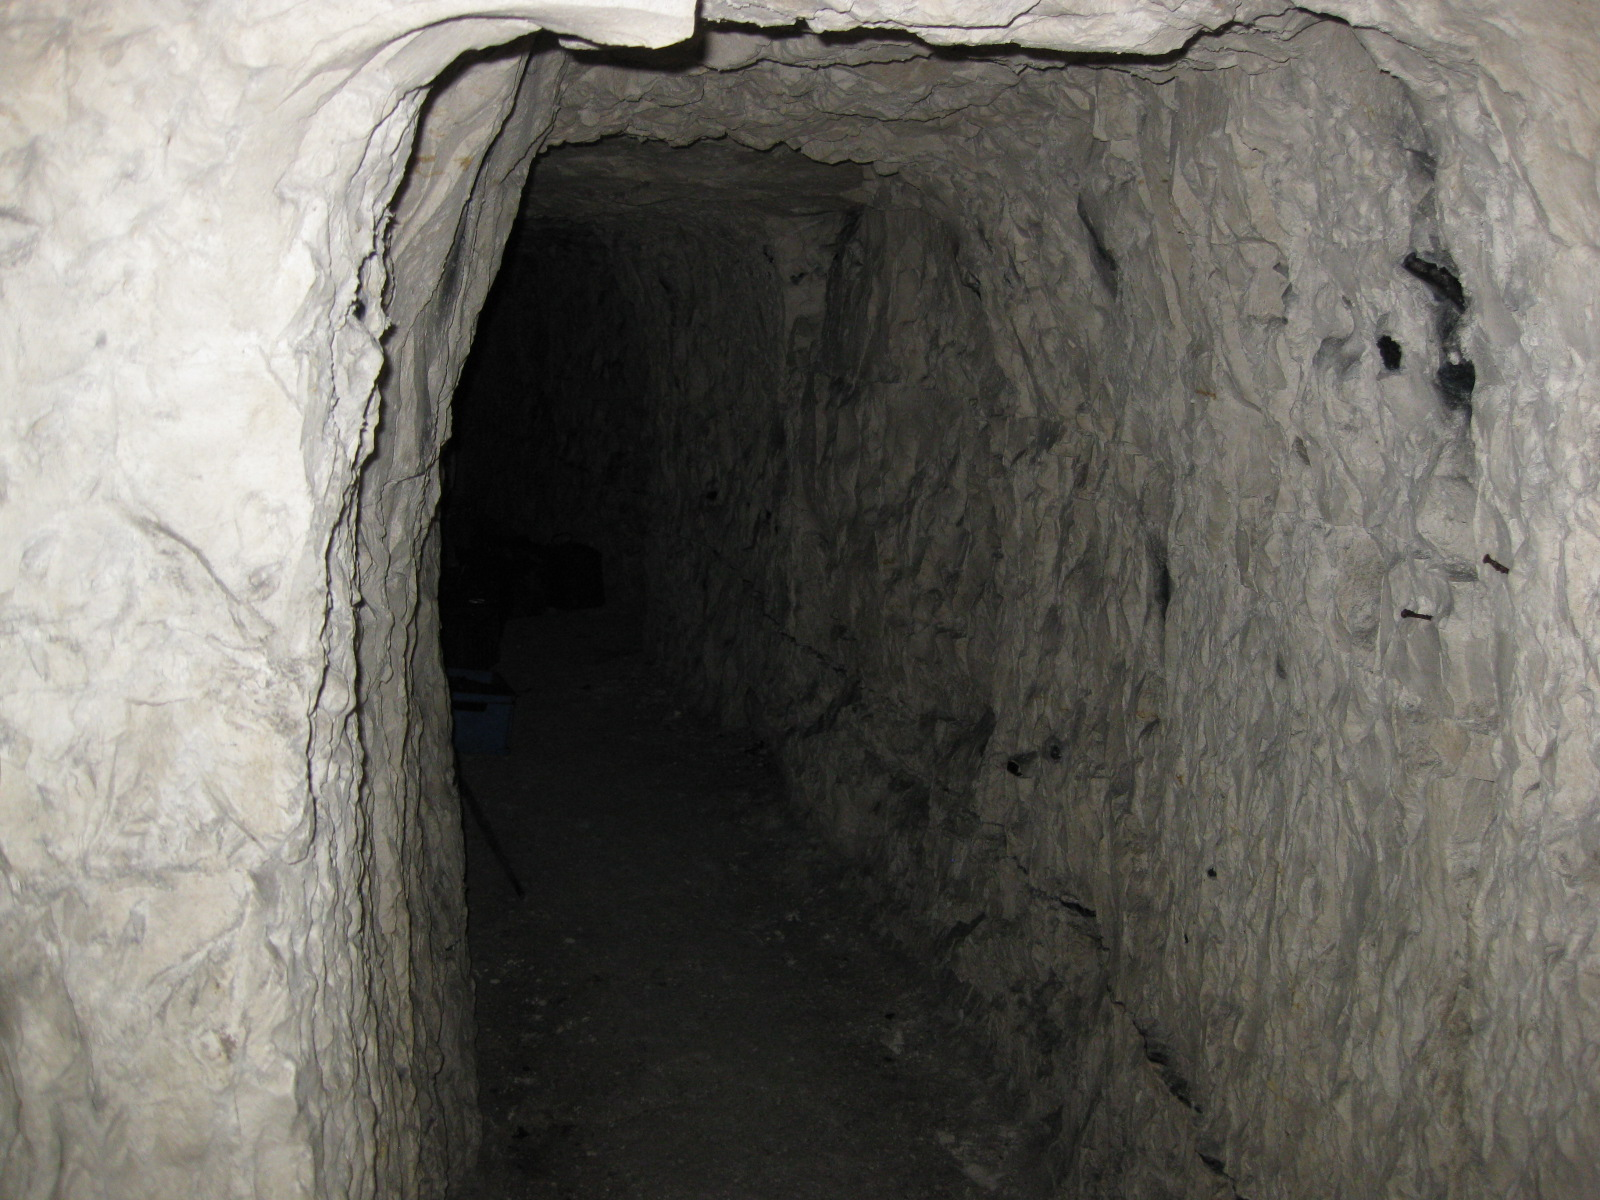 One of the many tunnels linking the quarries